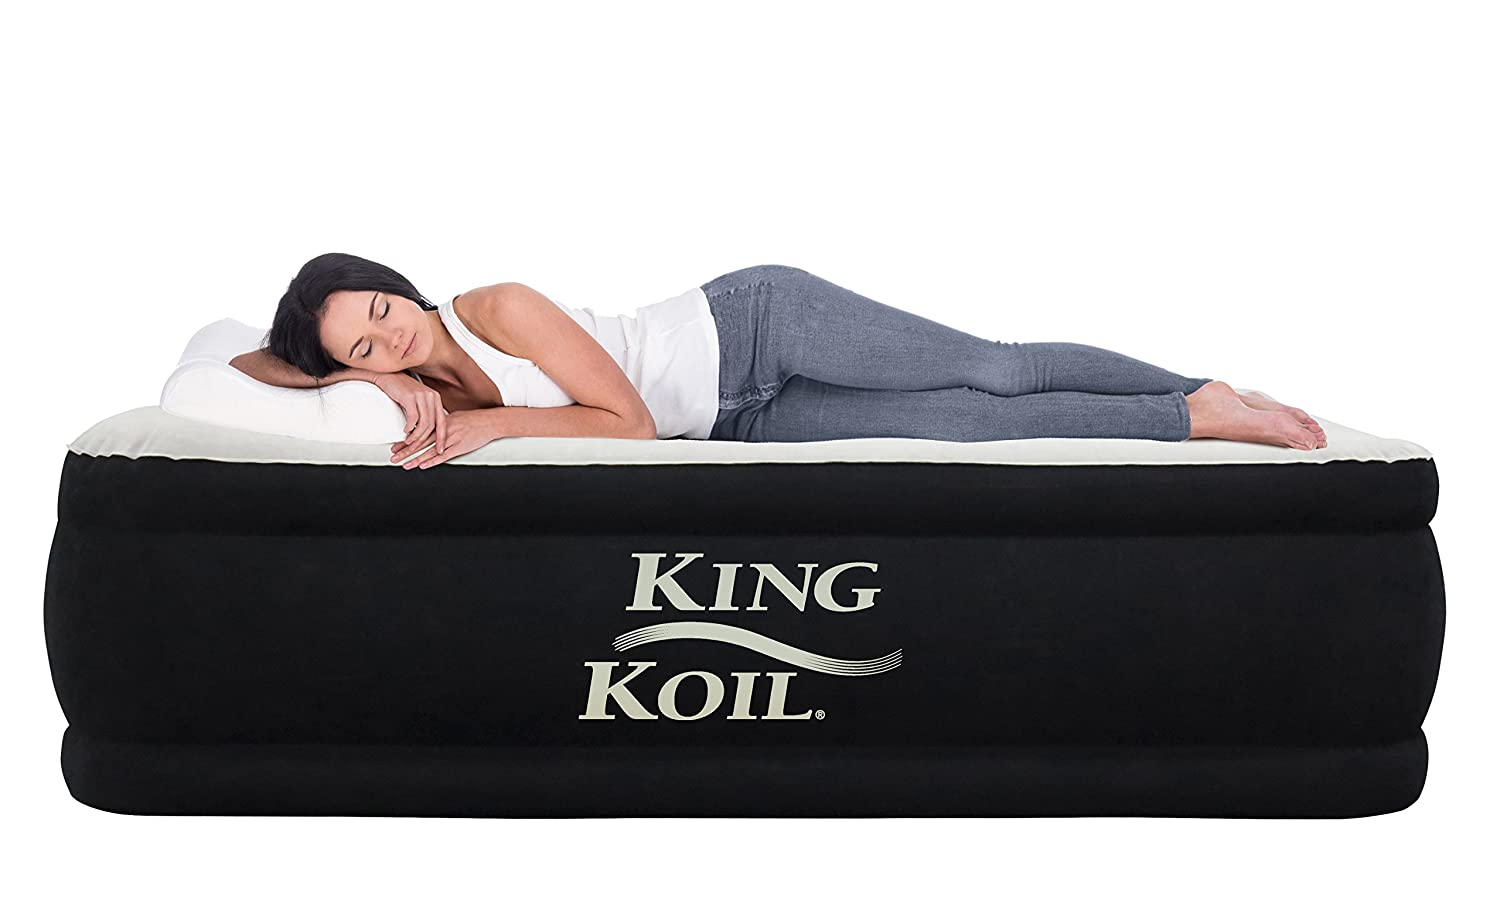 King Koil Queen Air Mattress Black Friday 2019  Deals